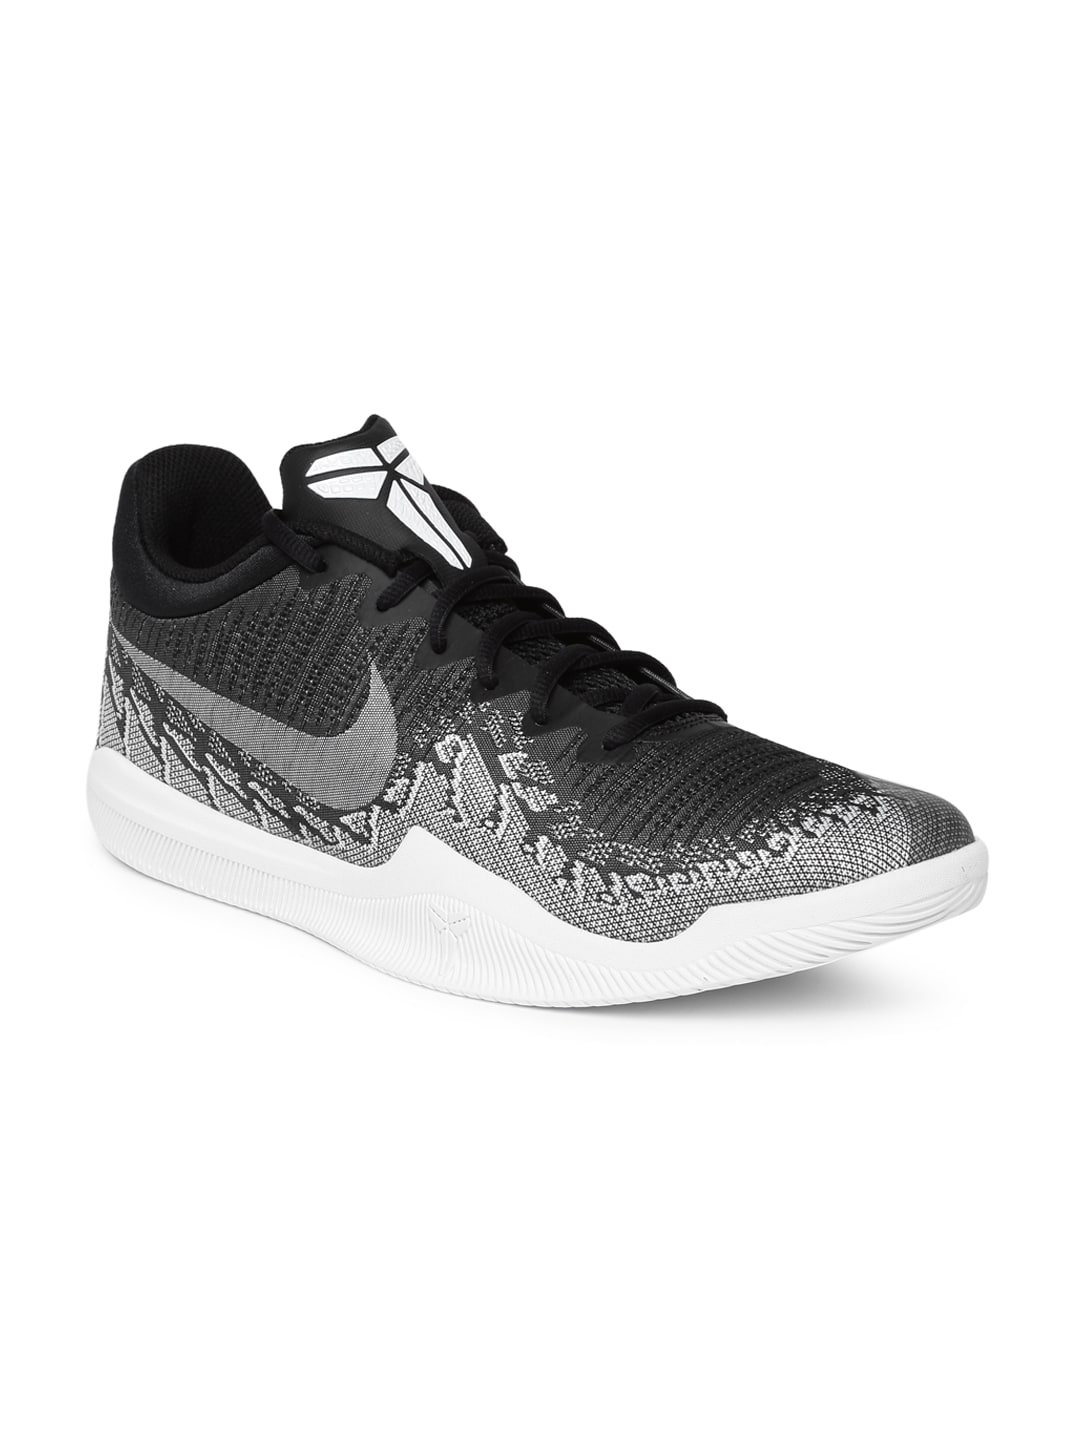 5109e3cd72e Nike Basketball Shoes